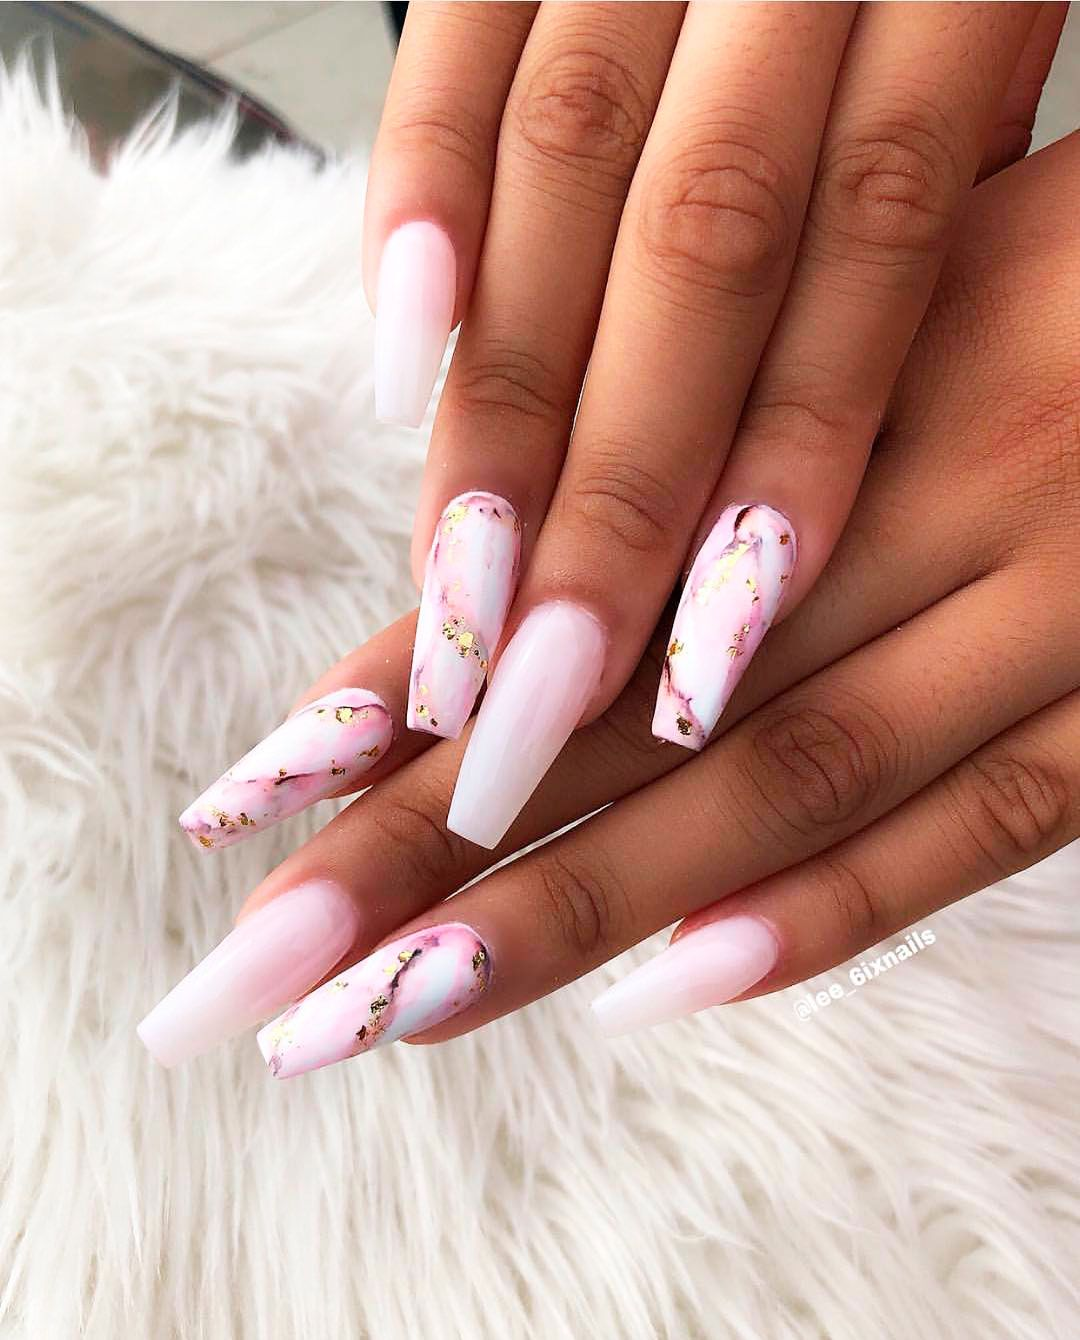 Wonderful pink marble coffin nails with pink \u0026 white ombre